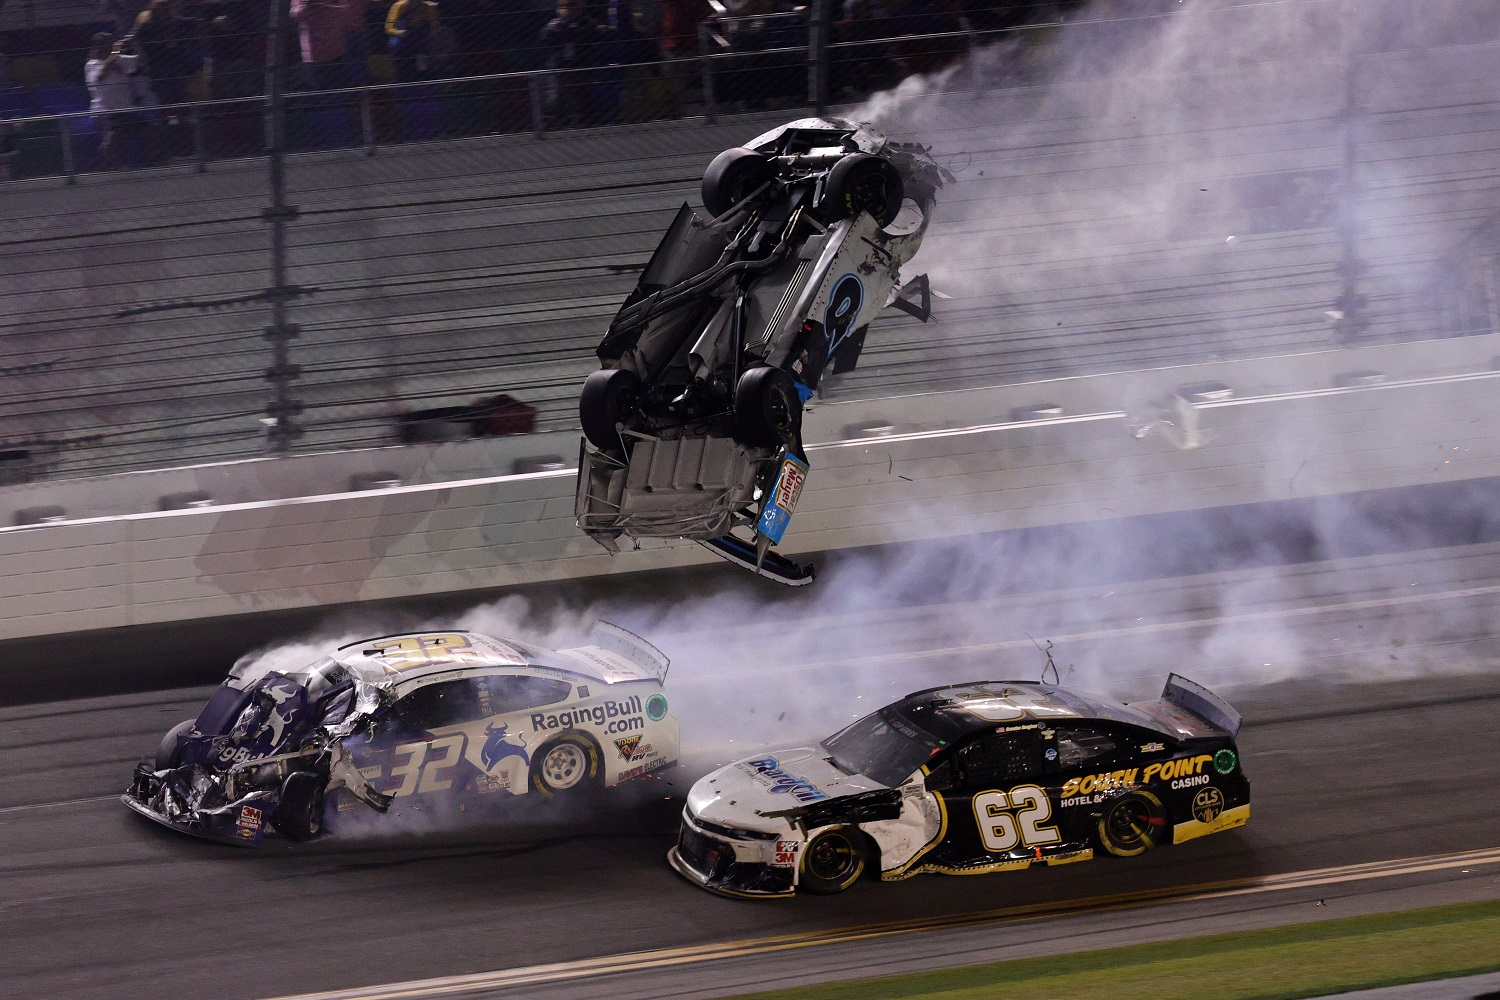 Racing 3-Wide With Austin Dillon and John Hunter Nemechek Is the Scariest Move in the NASCAR Cup Series